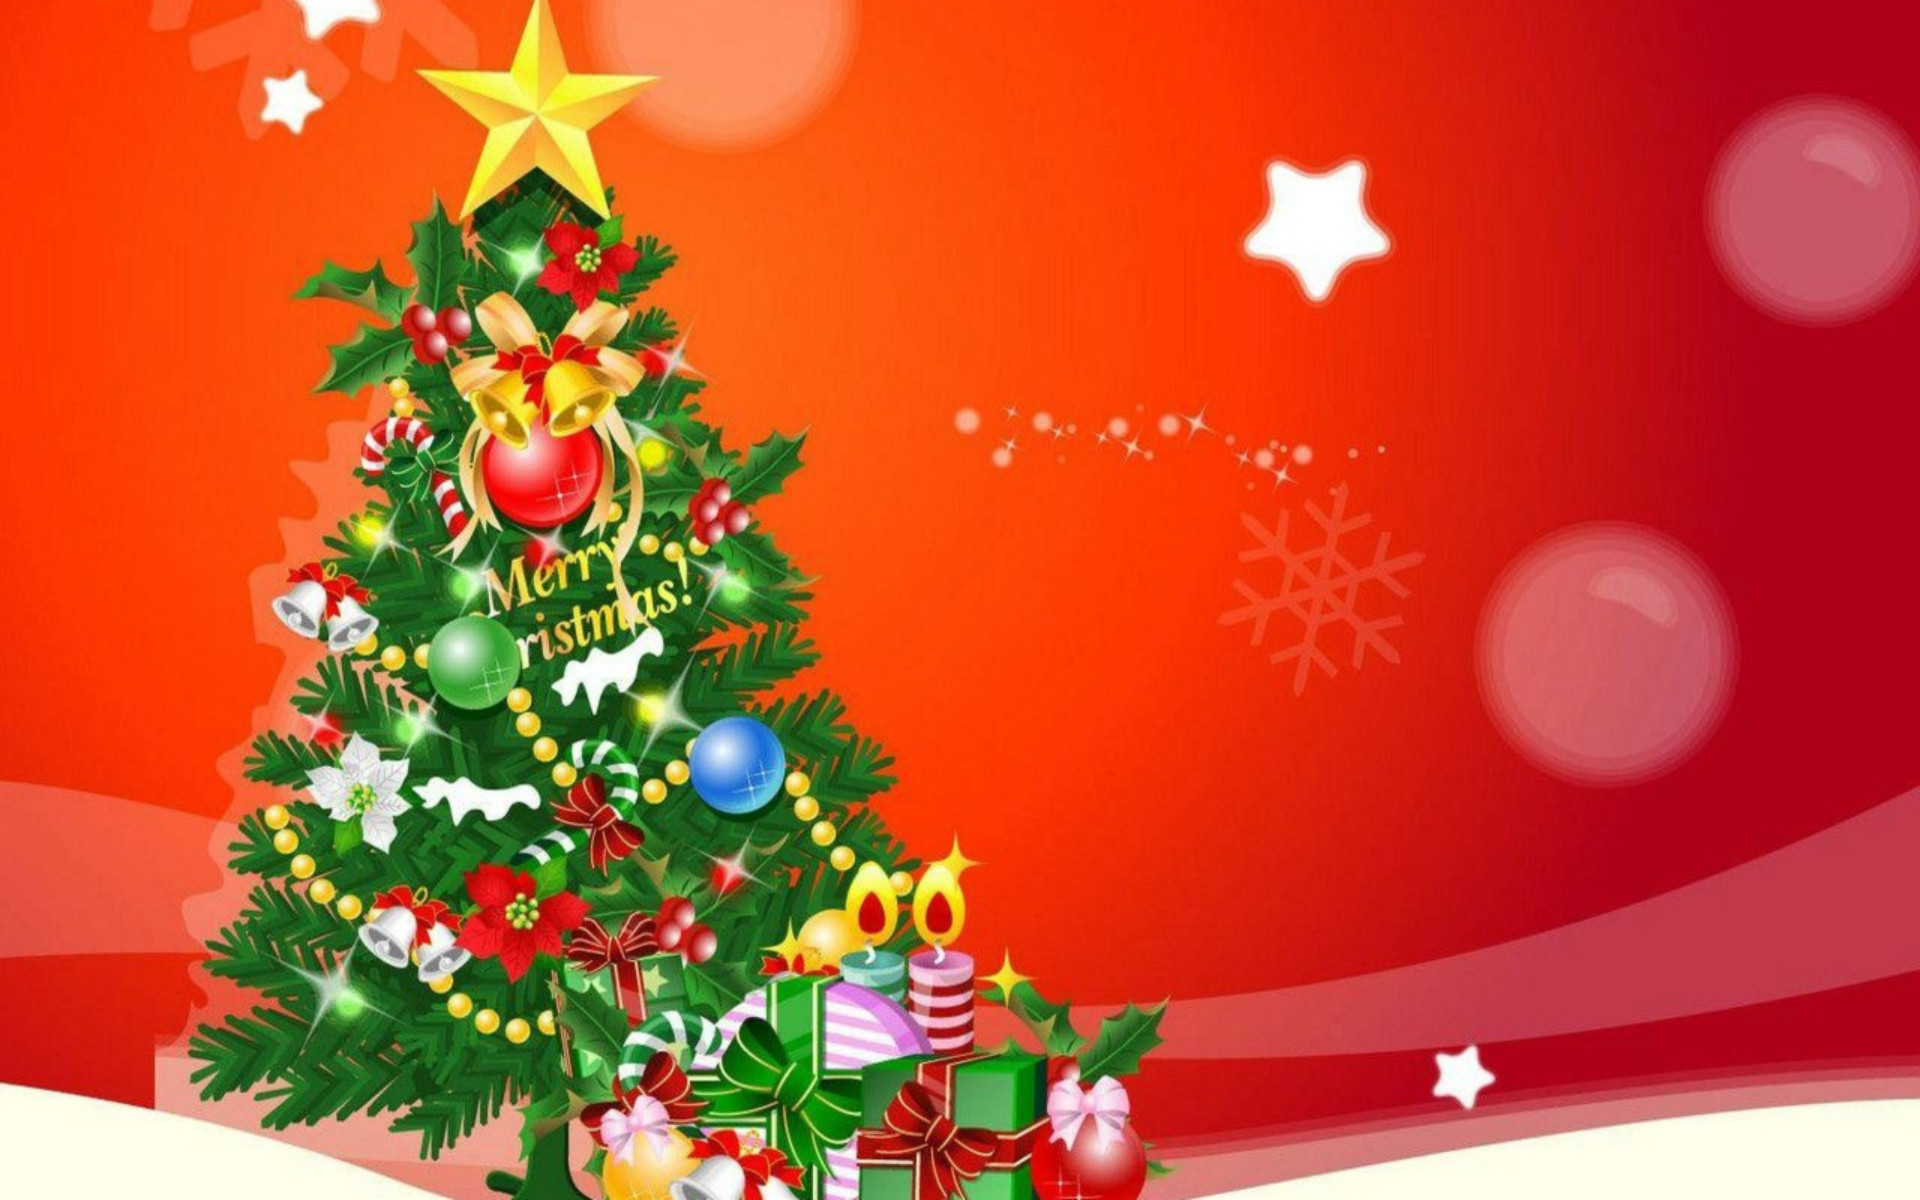 Merry Christmas Wallpaper Backgrounds 63 Pictures